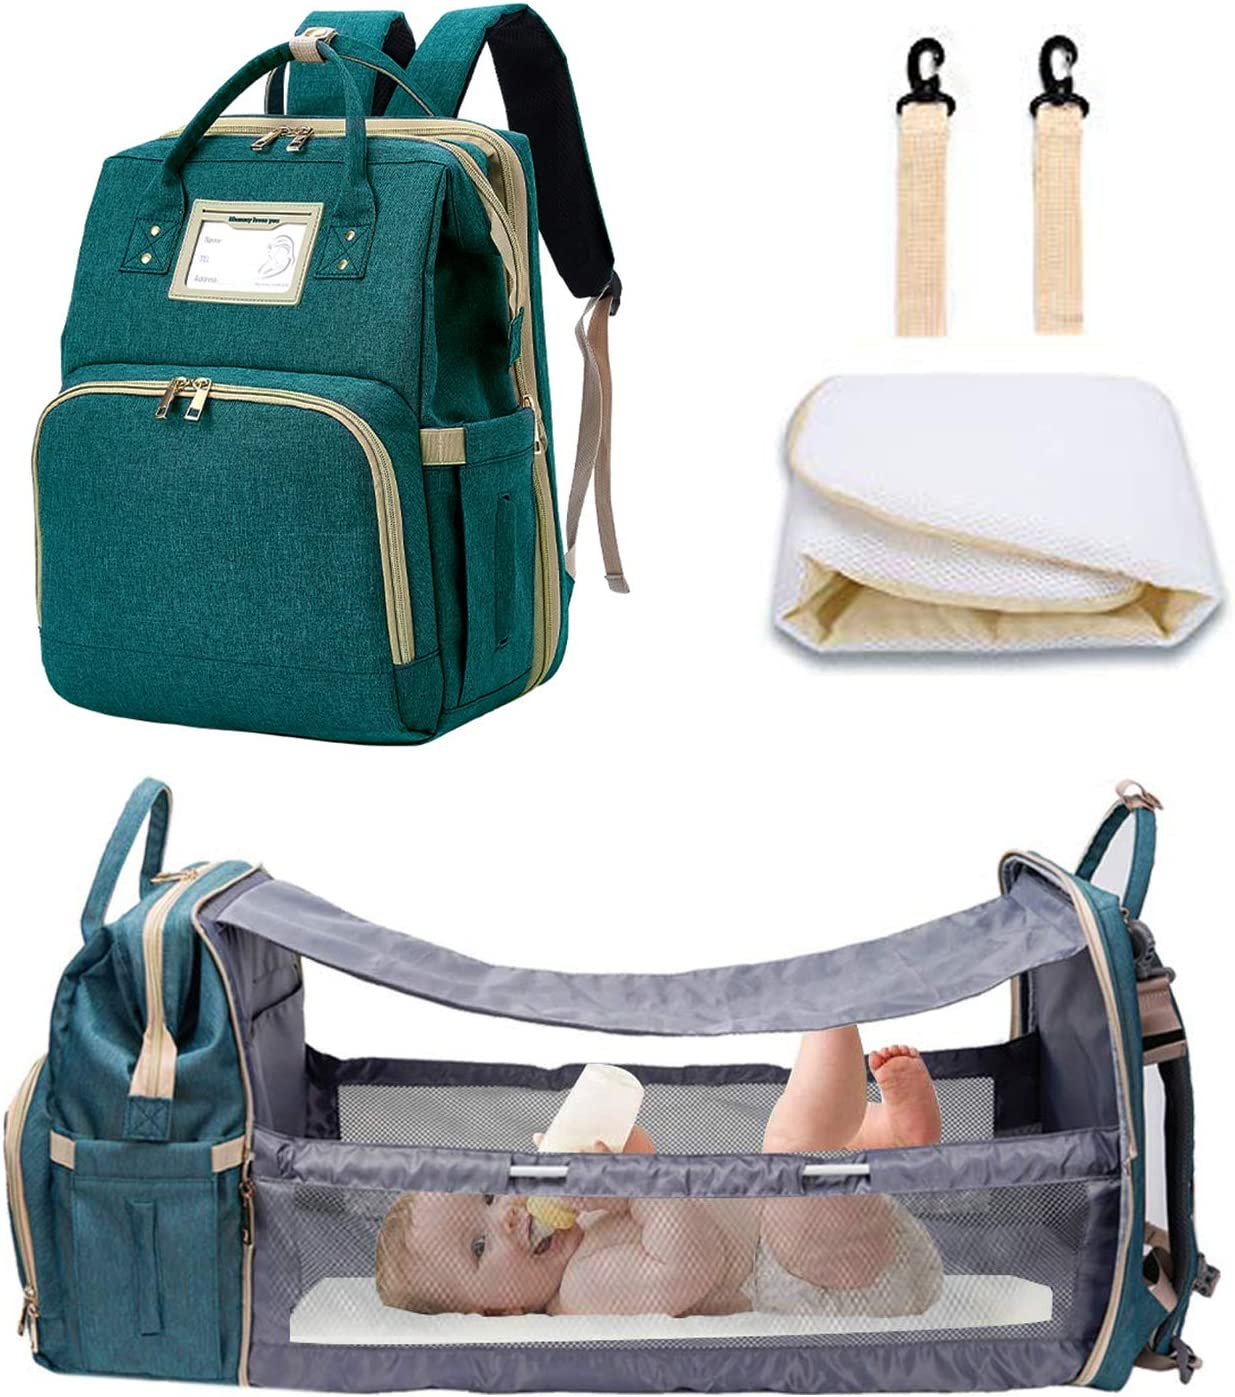 [Deluxe Version]Diaper Bag Baby bed, Travel Bassinet Backpack Portable Infant Crib With Sunshade and USB Charging Port for Mom, Diaper Bag Backpack with Fodable Crib. (Green)